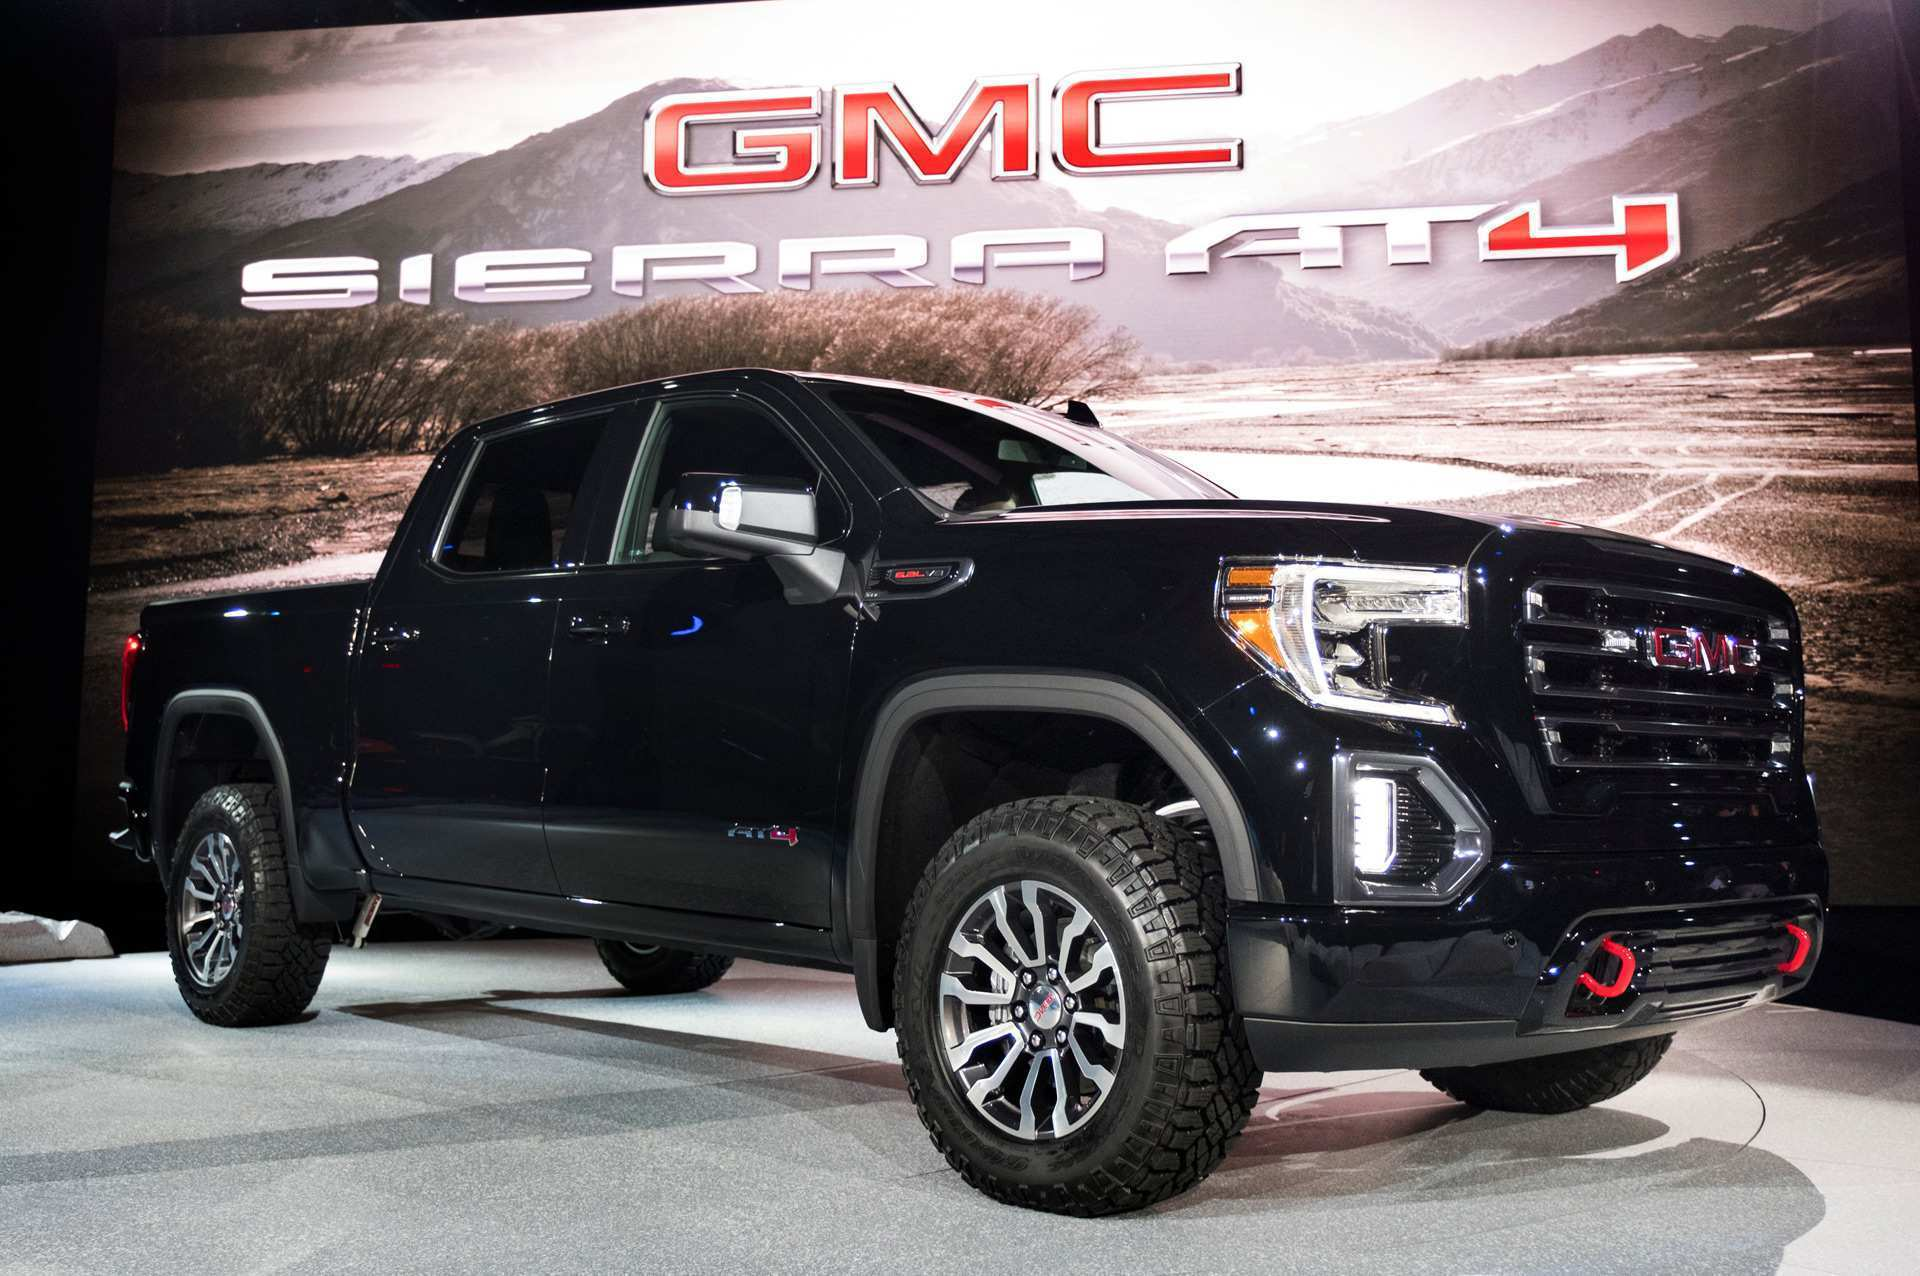 68 Concept of 2020 Gmc At4 Specs with 2020 Gmc At4